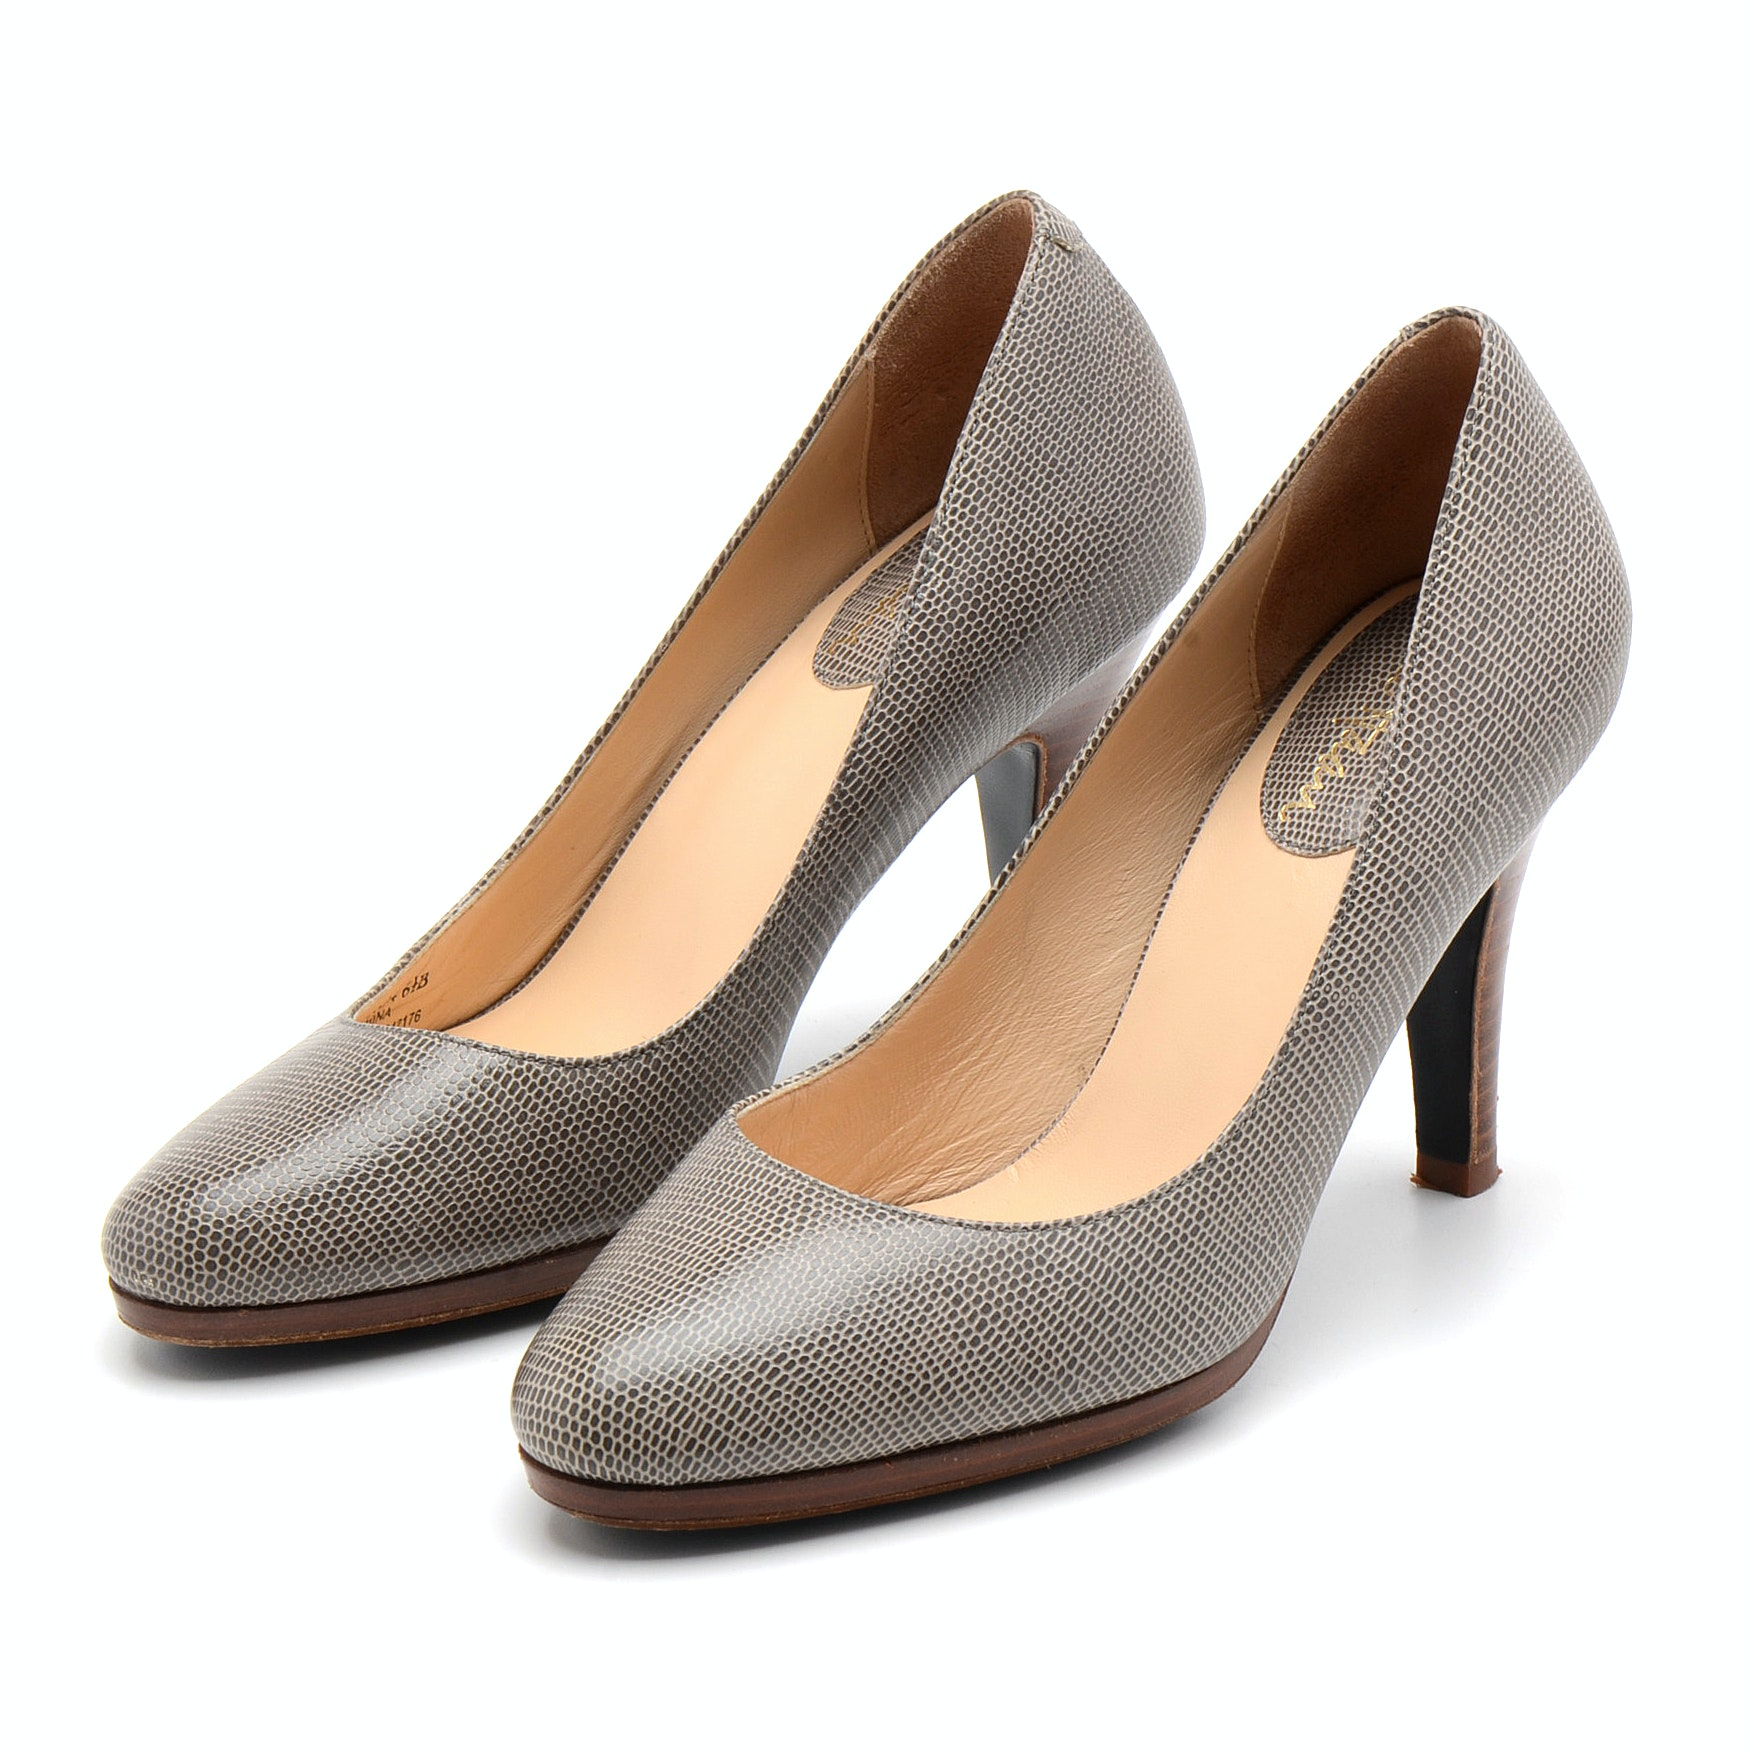 Cole Haan Pumps with Stacked Wood Heel and Nike Air Foot Bed